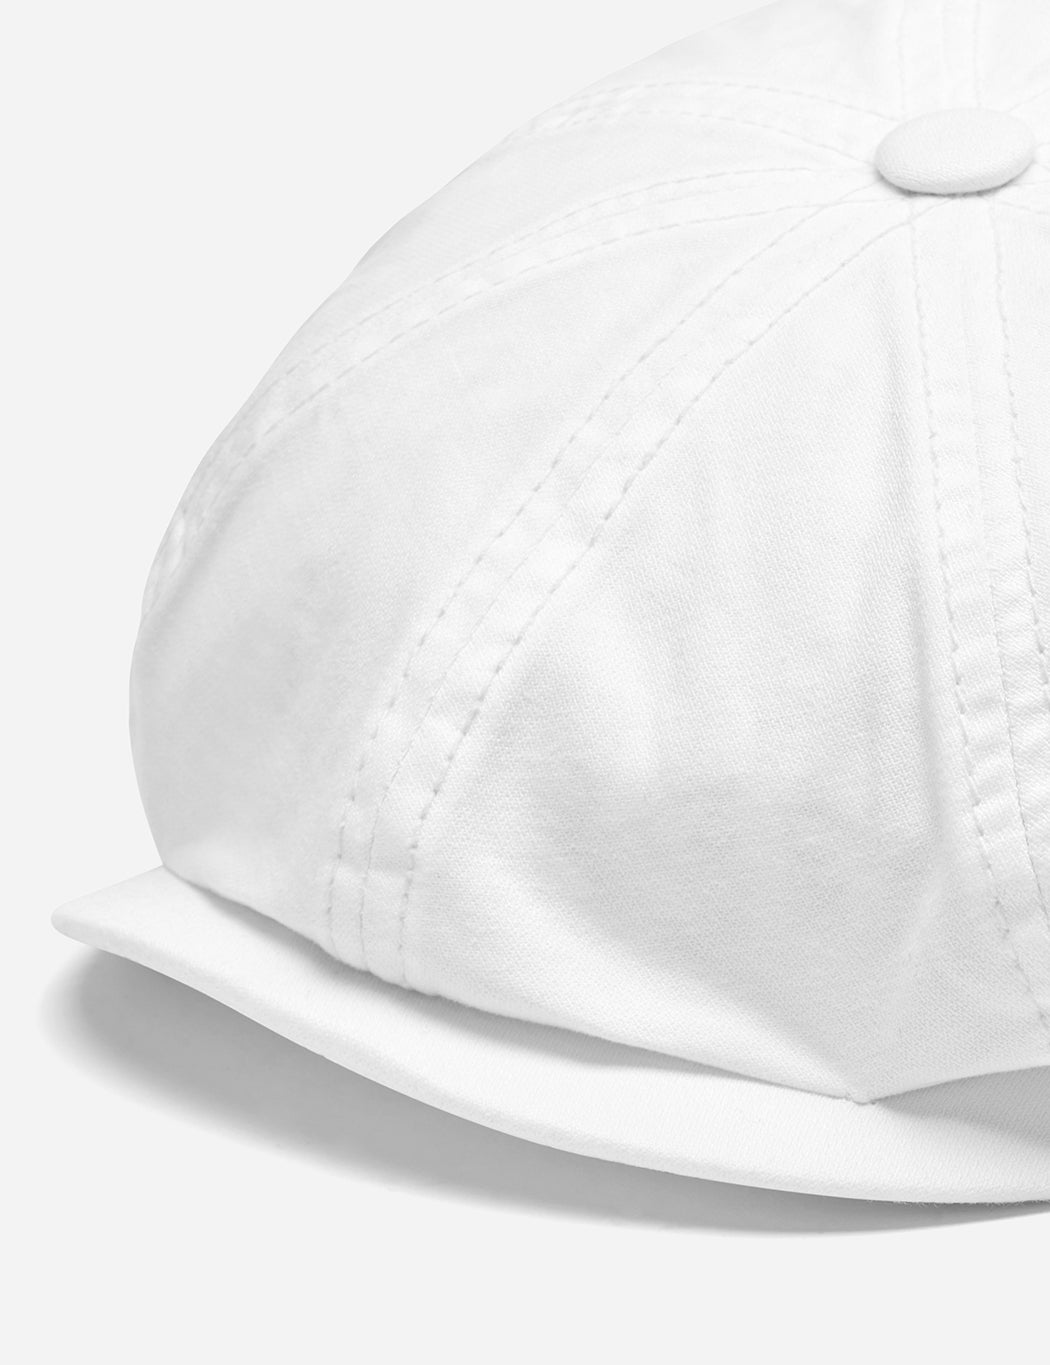 Stetson Hatteras Dyed Newsboy Cap (Cotton) - Cream White